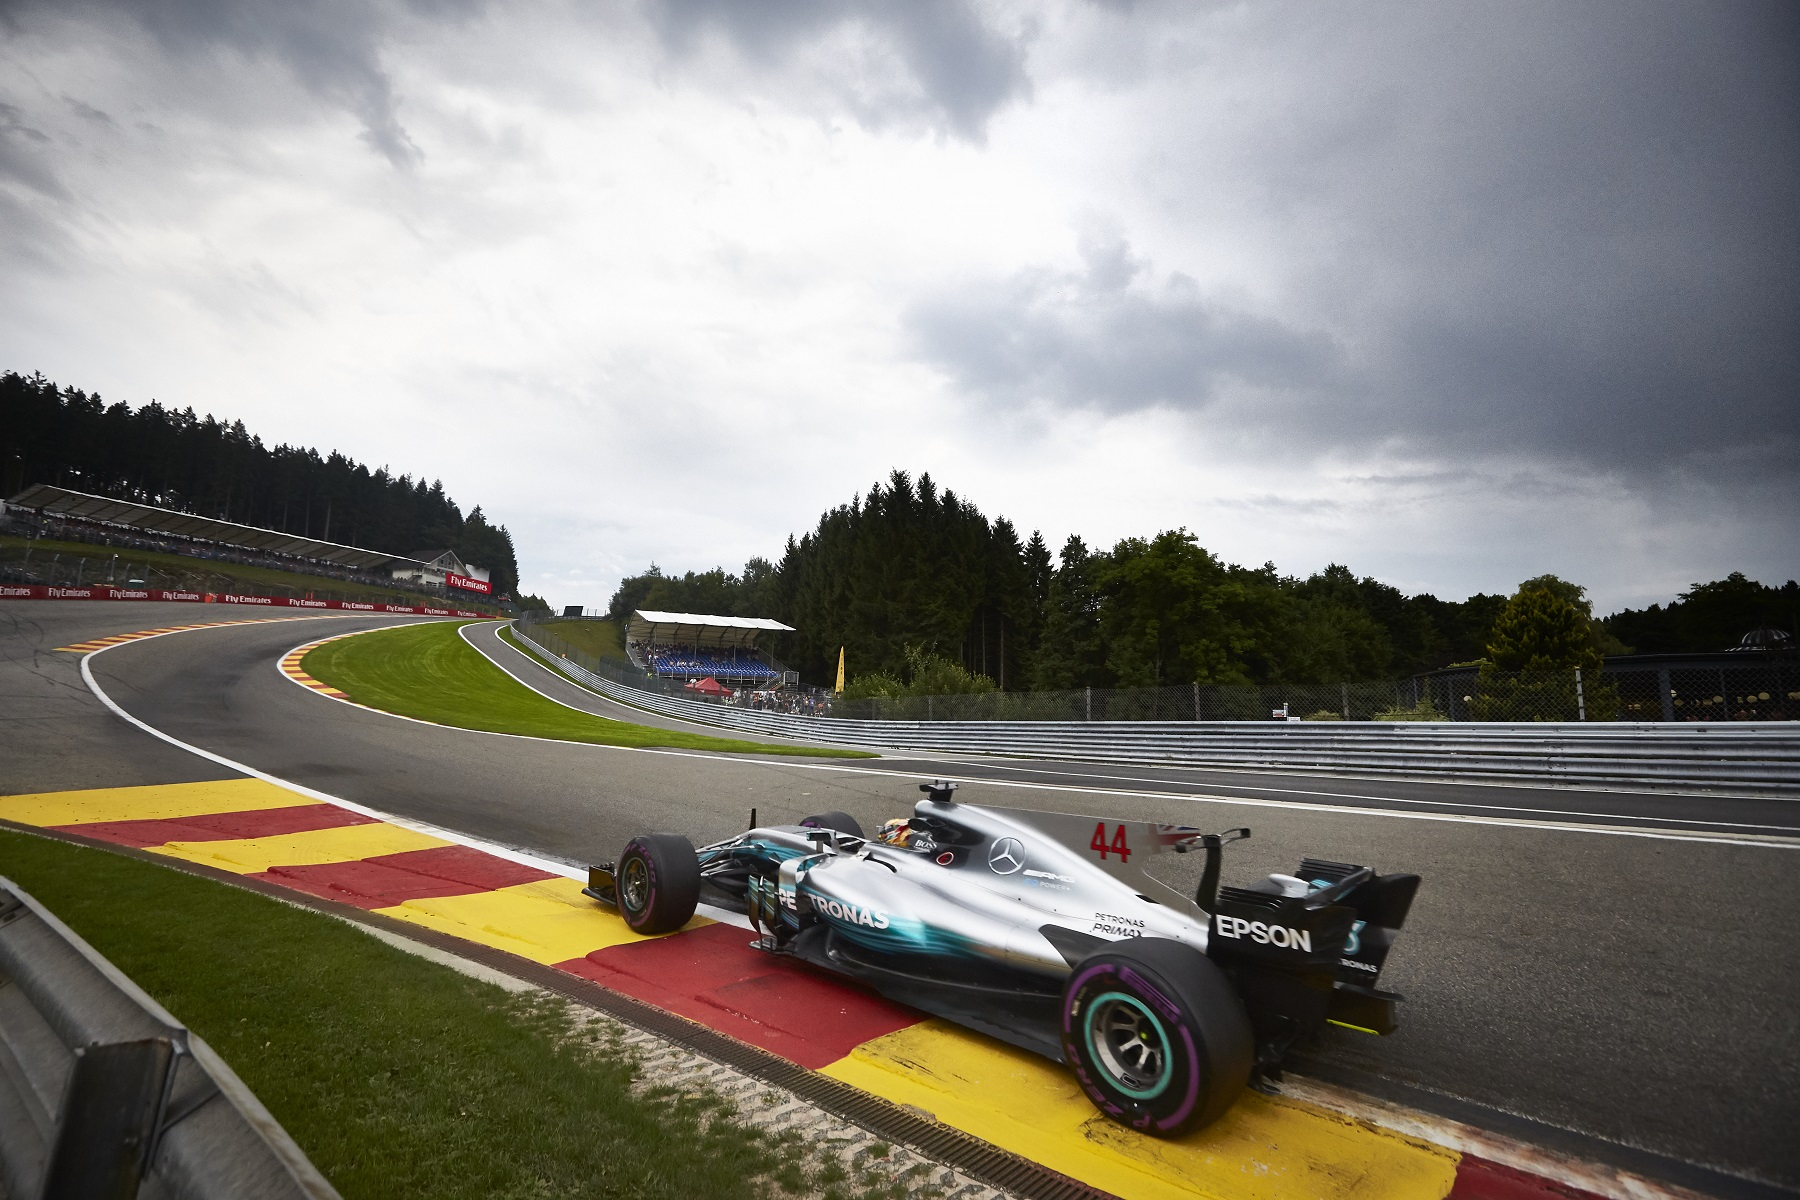 Lewis Hamilton in his Mercedes at Circuit de Spa-Francorchamps.